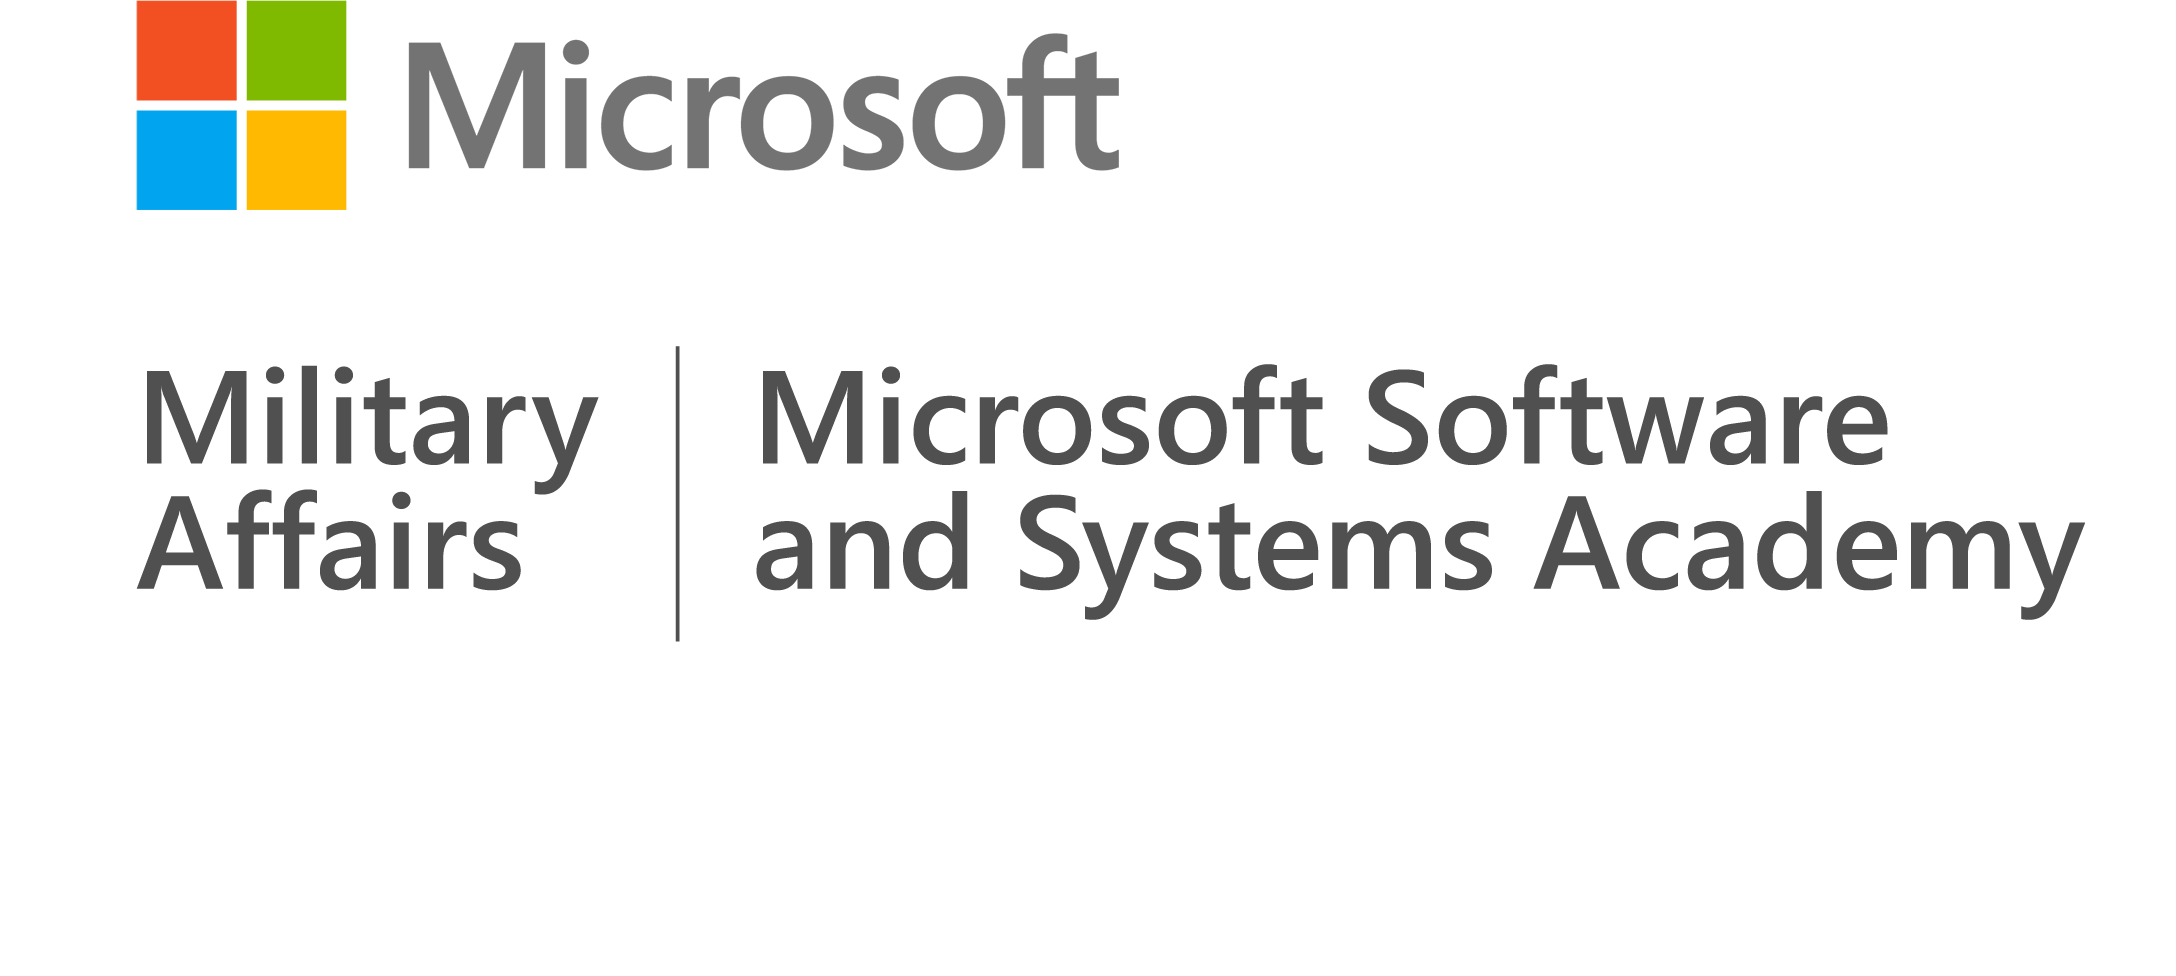 Microsoft Software and Systems Academy